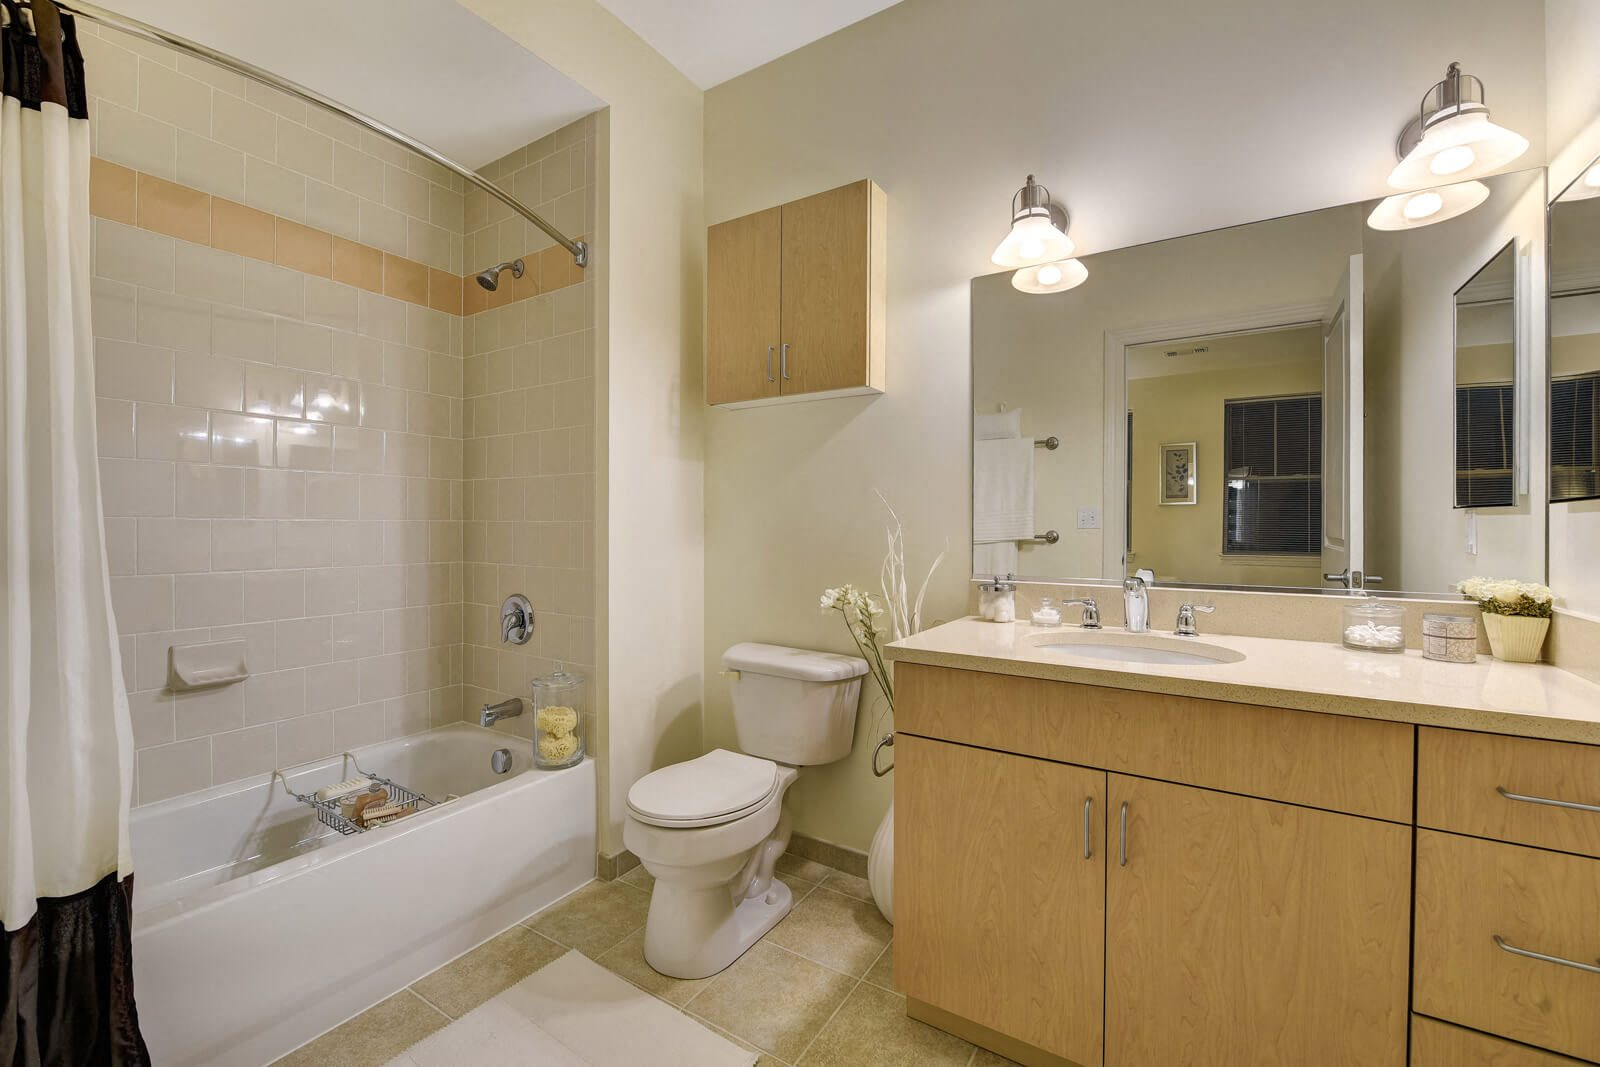 Spacious Bathrooms with Ample Storage at Windsor at Oak Grove, Melrose, MA